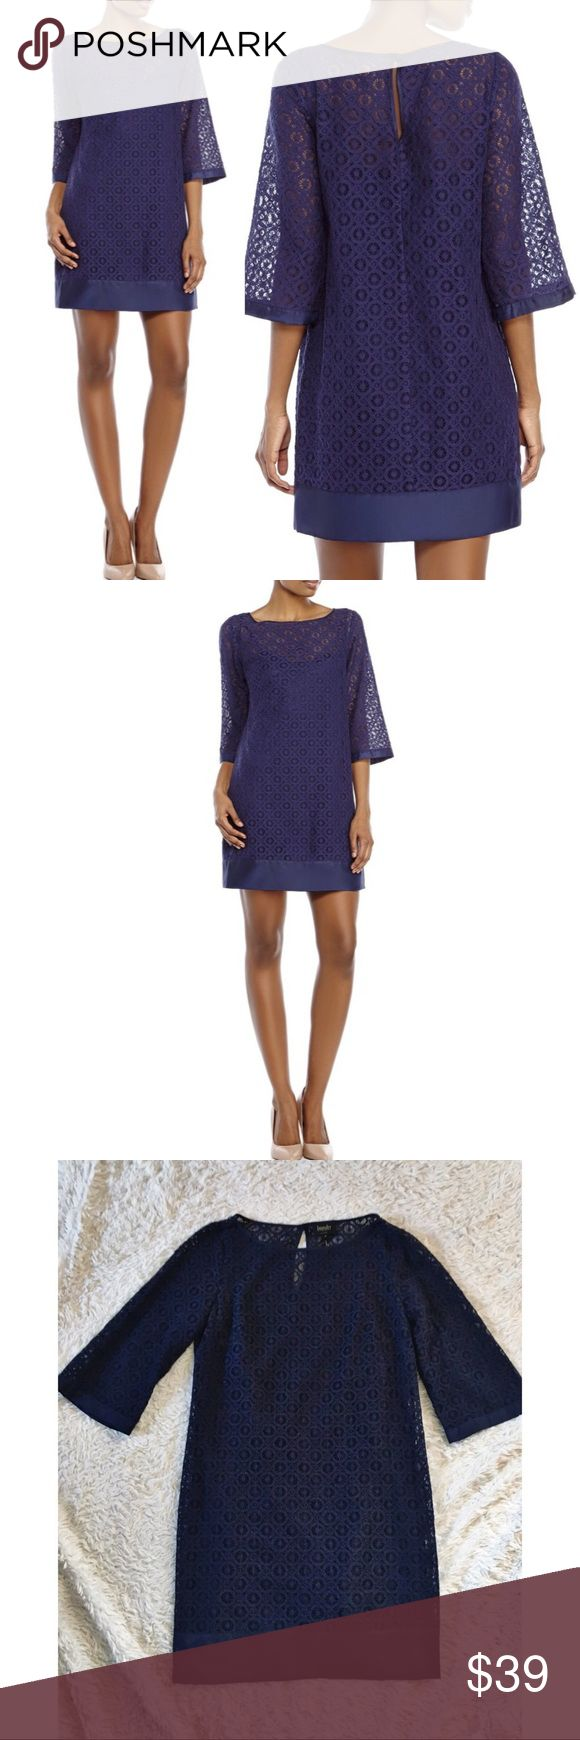 """✨NWT✨ LAUNDRY By SHELLI SEGAL Crochet Shift Dress NEW with tags Crochet/lace Shift Dress with 3/4 Bell Sleeves. Slip lining. The color is a true dark navy blue. Pit to pit: 30"""", Length: 34.5"""". ✨OFFERS WELCOME✨ Laundry By Shelli Segal Dresses"""